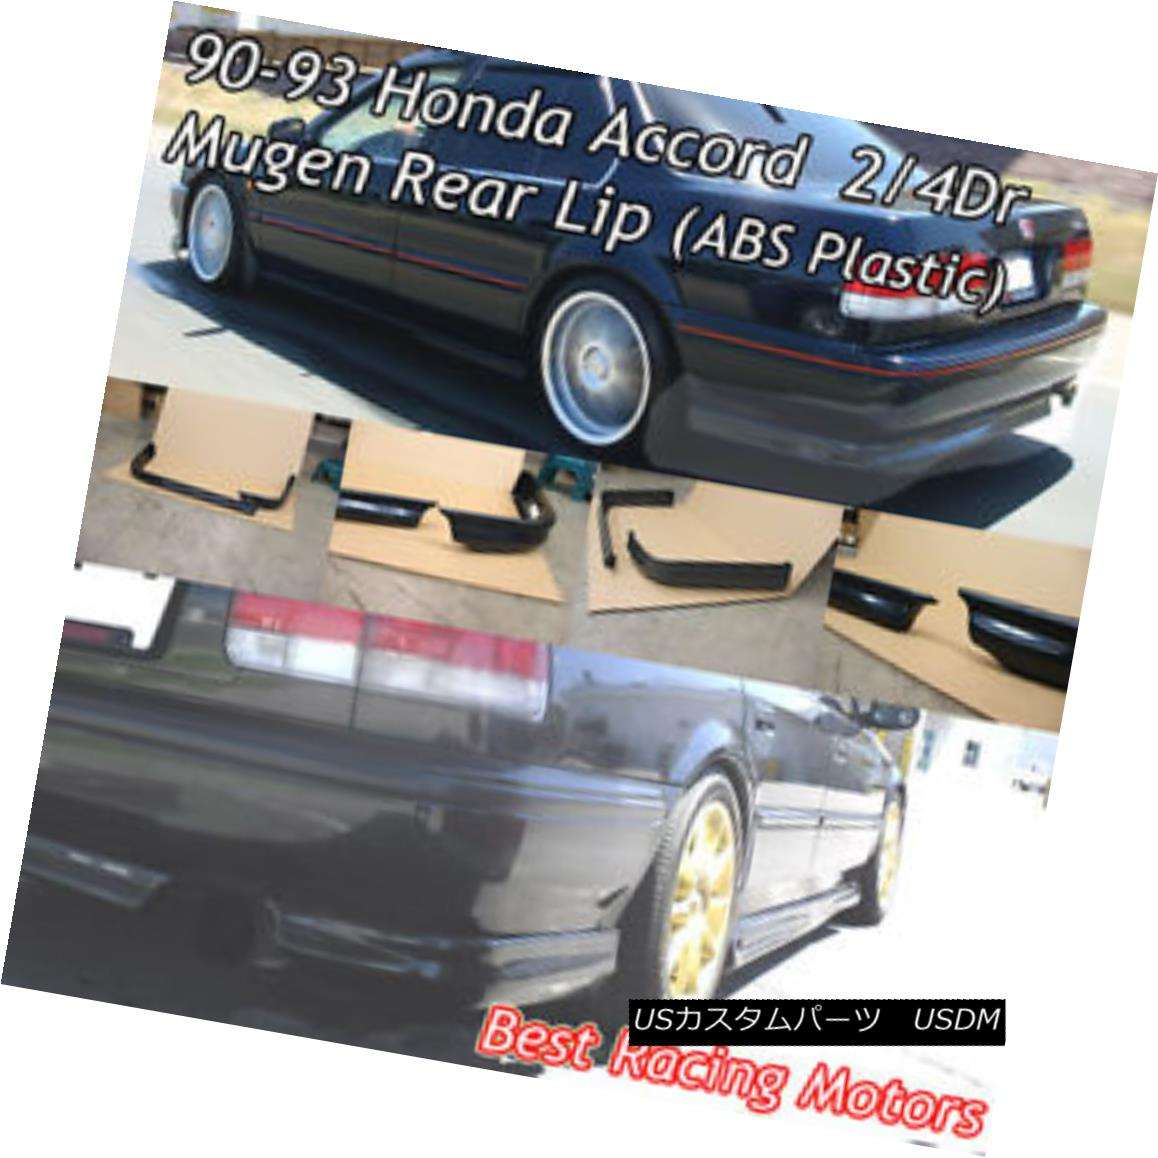 エアロパーツ Mu-gen Style Rear Lip (ABS) Fits 90-93 Honda Accord Mu-genスタイルのリアリップ(ABS)は90-93 Honda Accordに適合